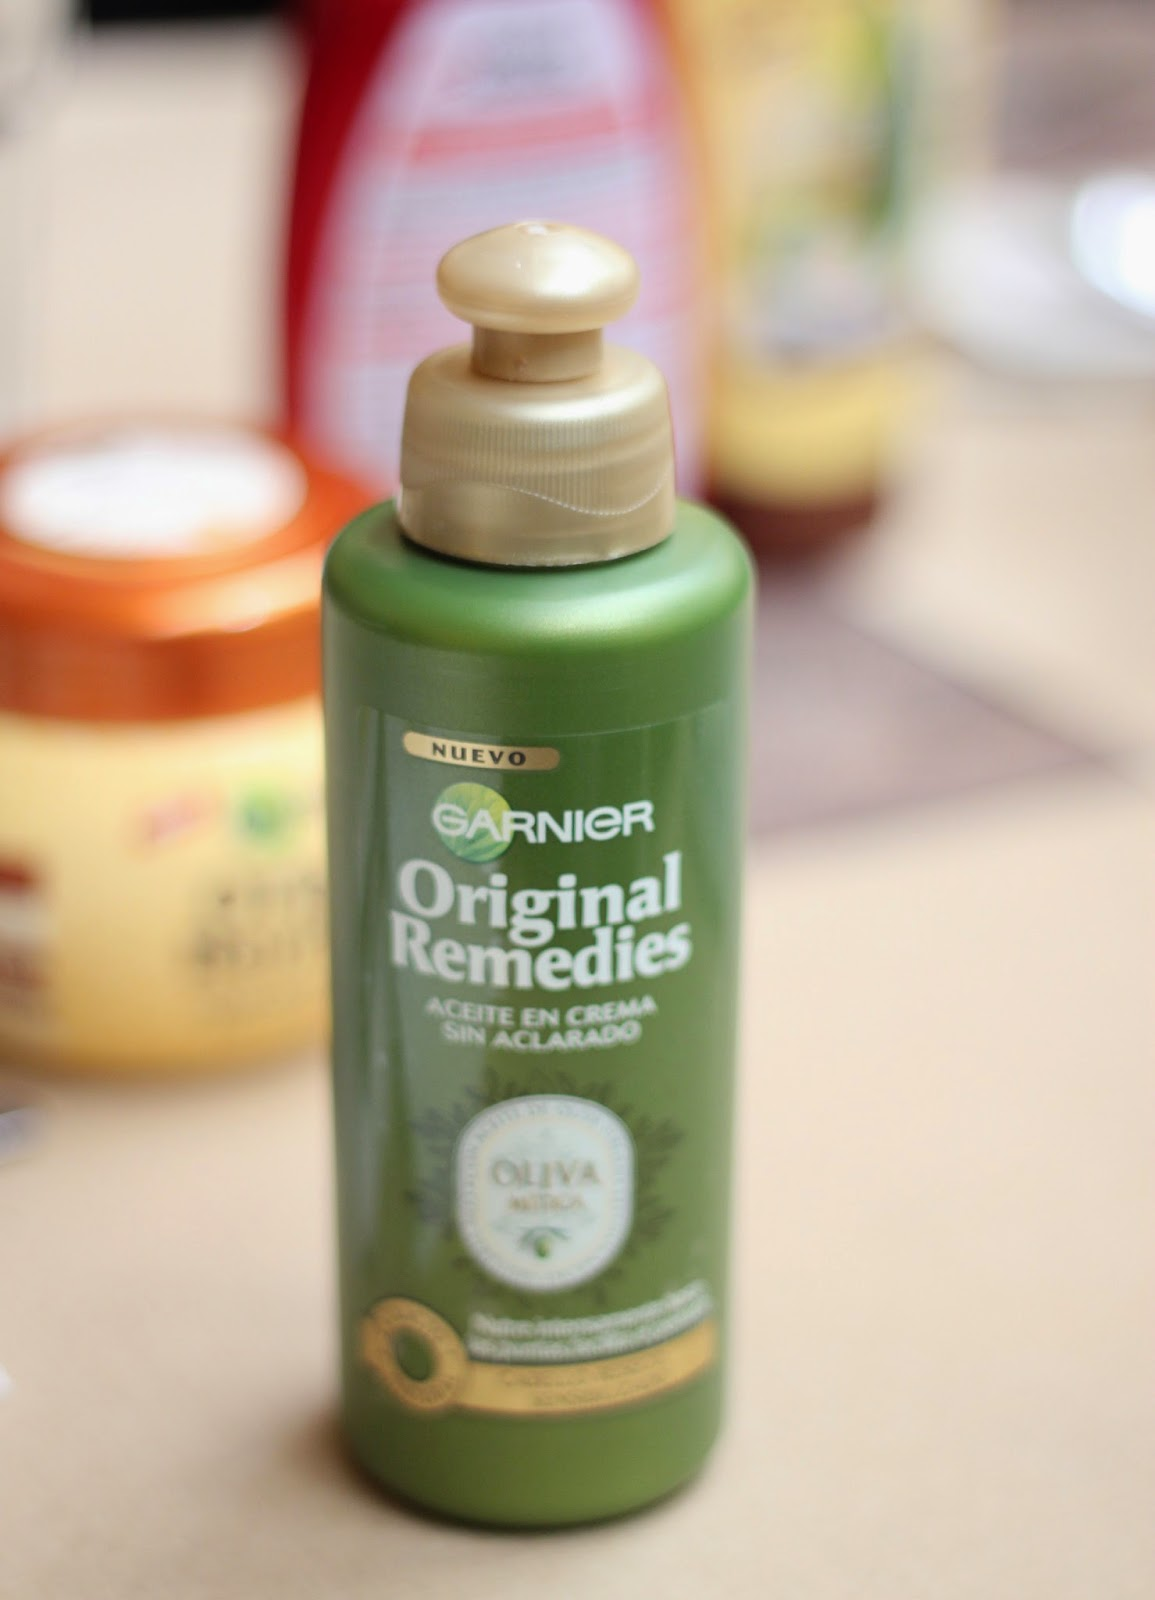 photo-garnier-original_remedies-oliva_mitica-aceite_en_crema